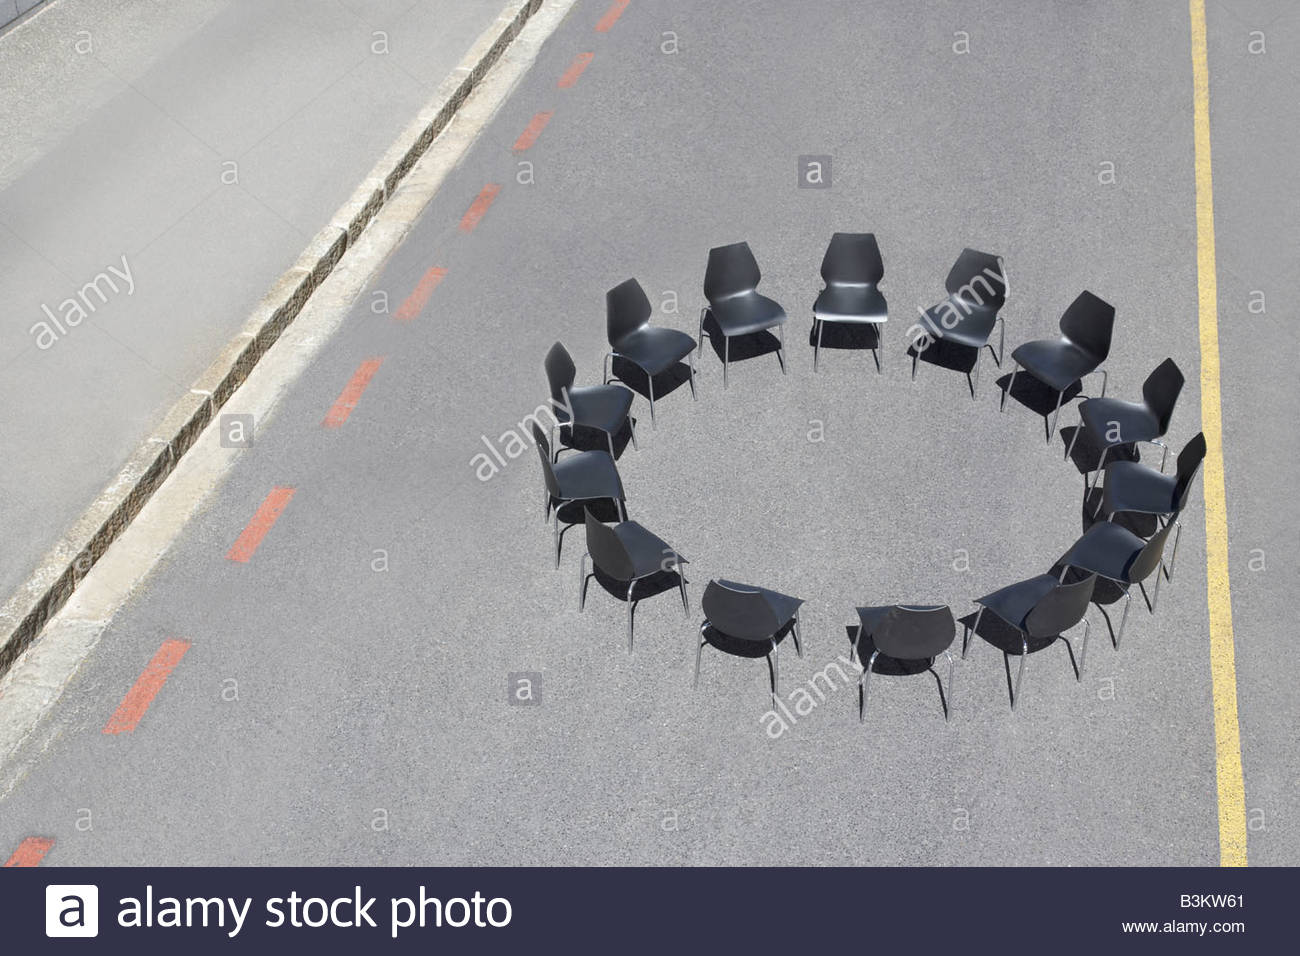 Circle of office chairs in roadway - Stock Image